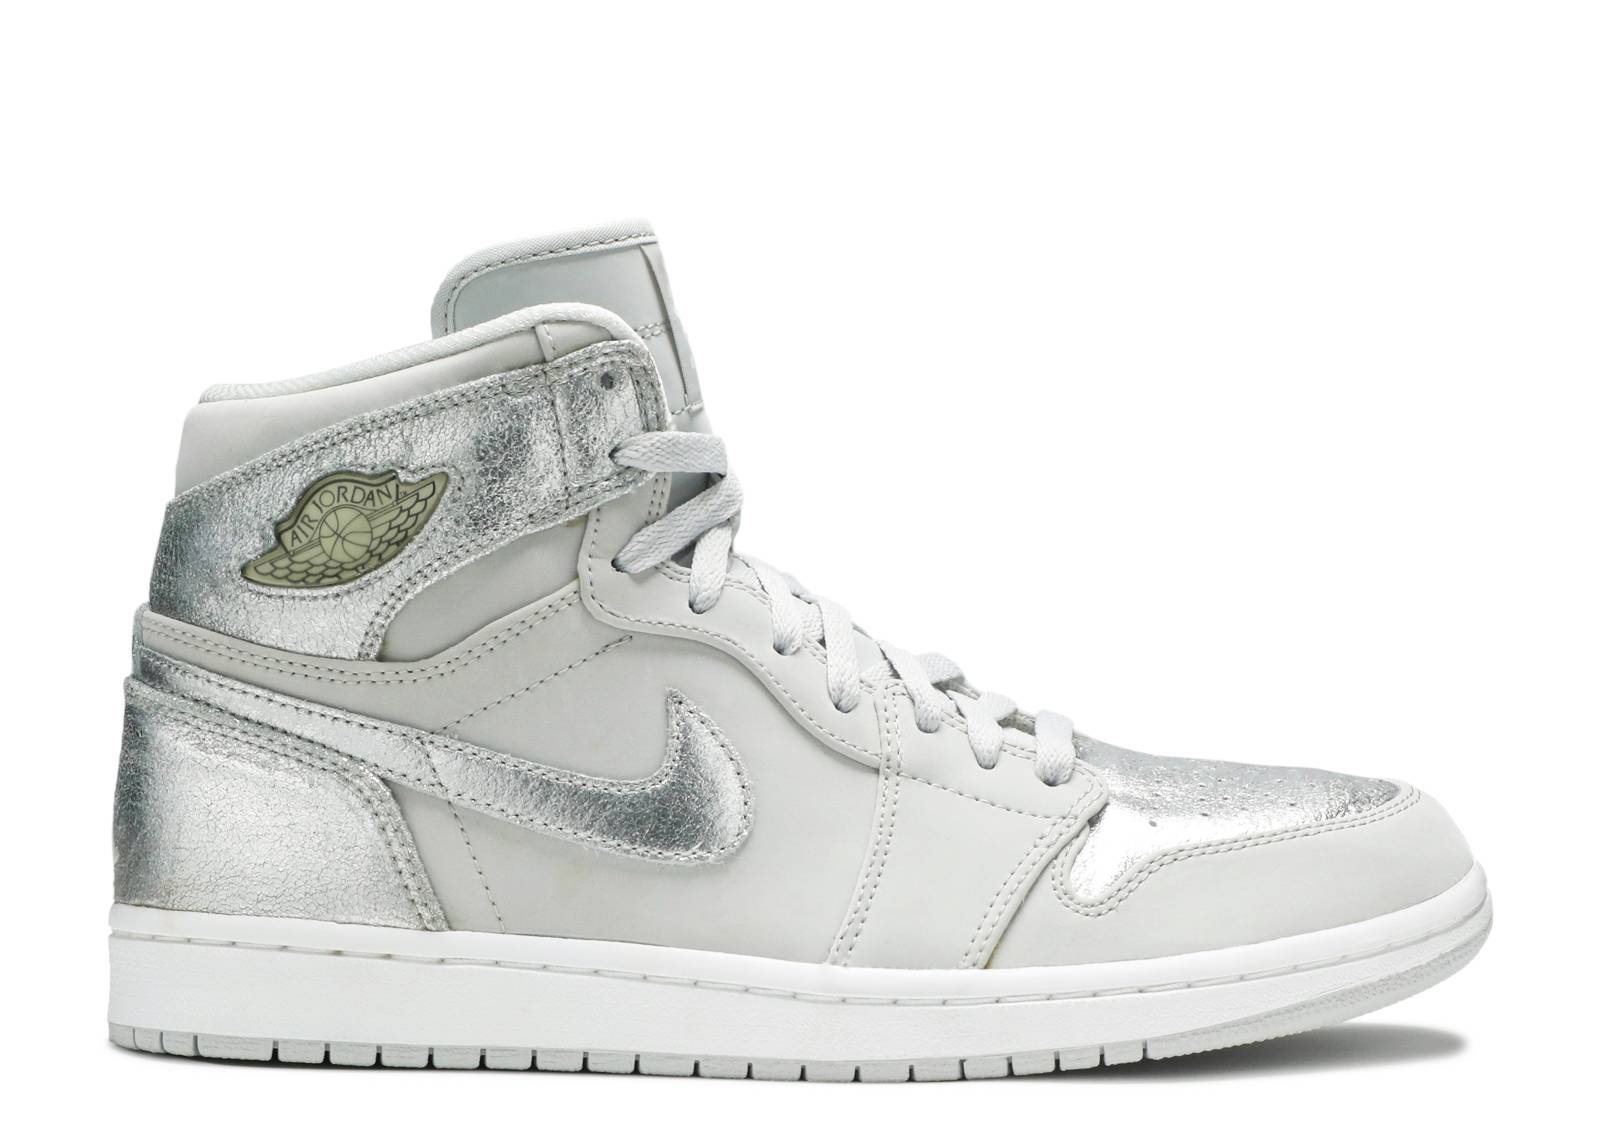 reputable site 0f3f2 63080 air jordan 1 retro hi silver